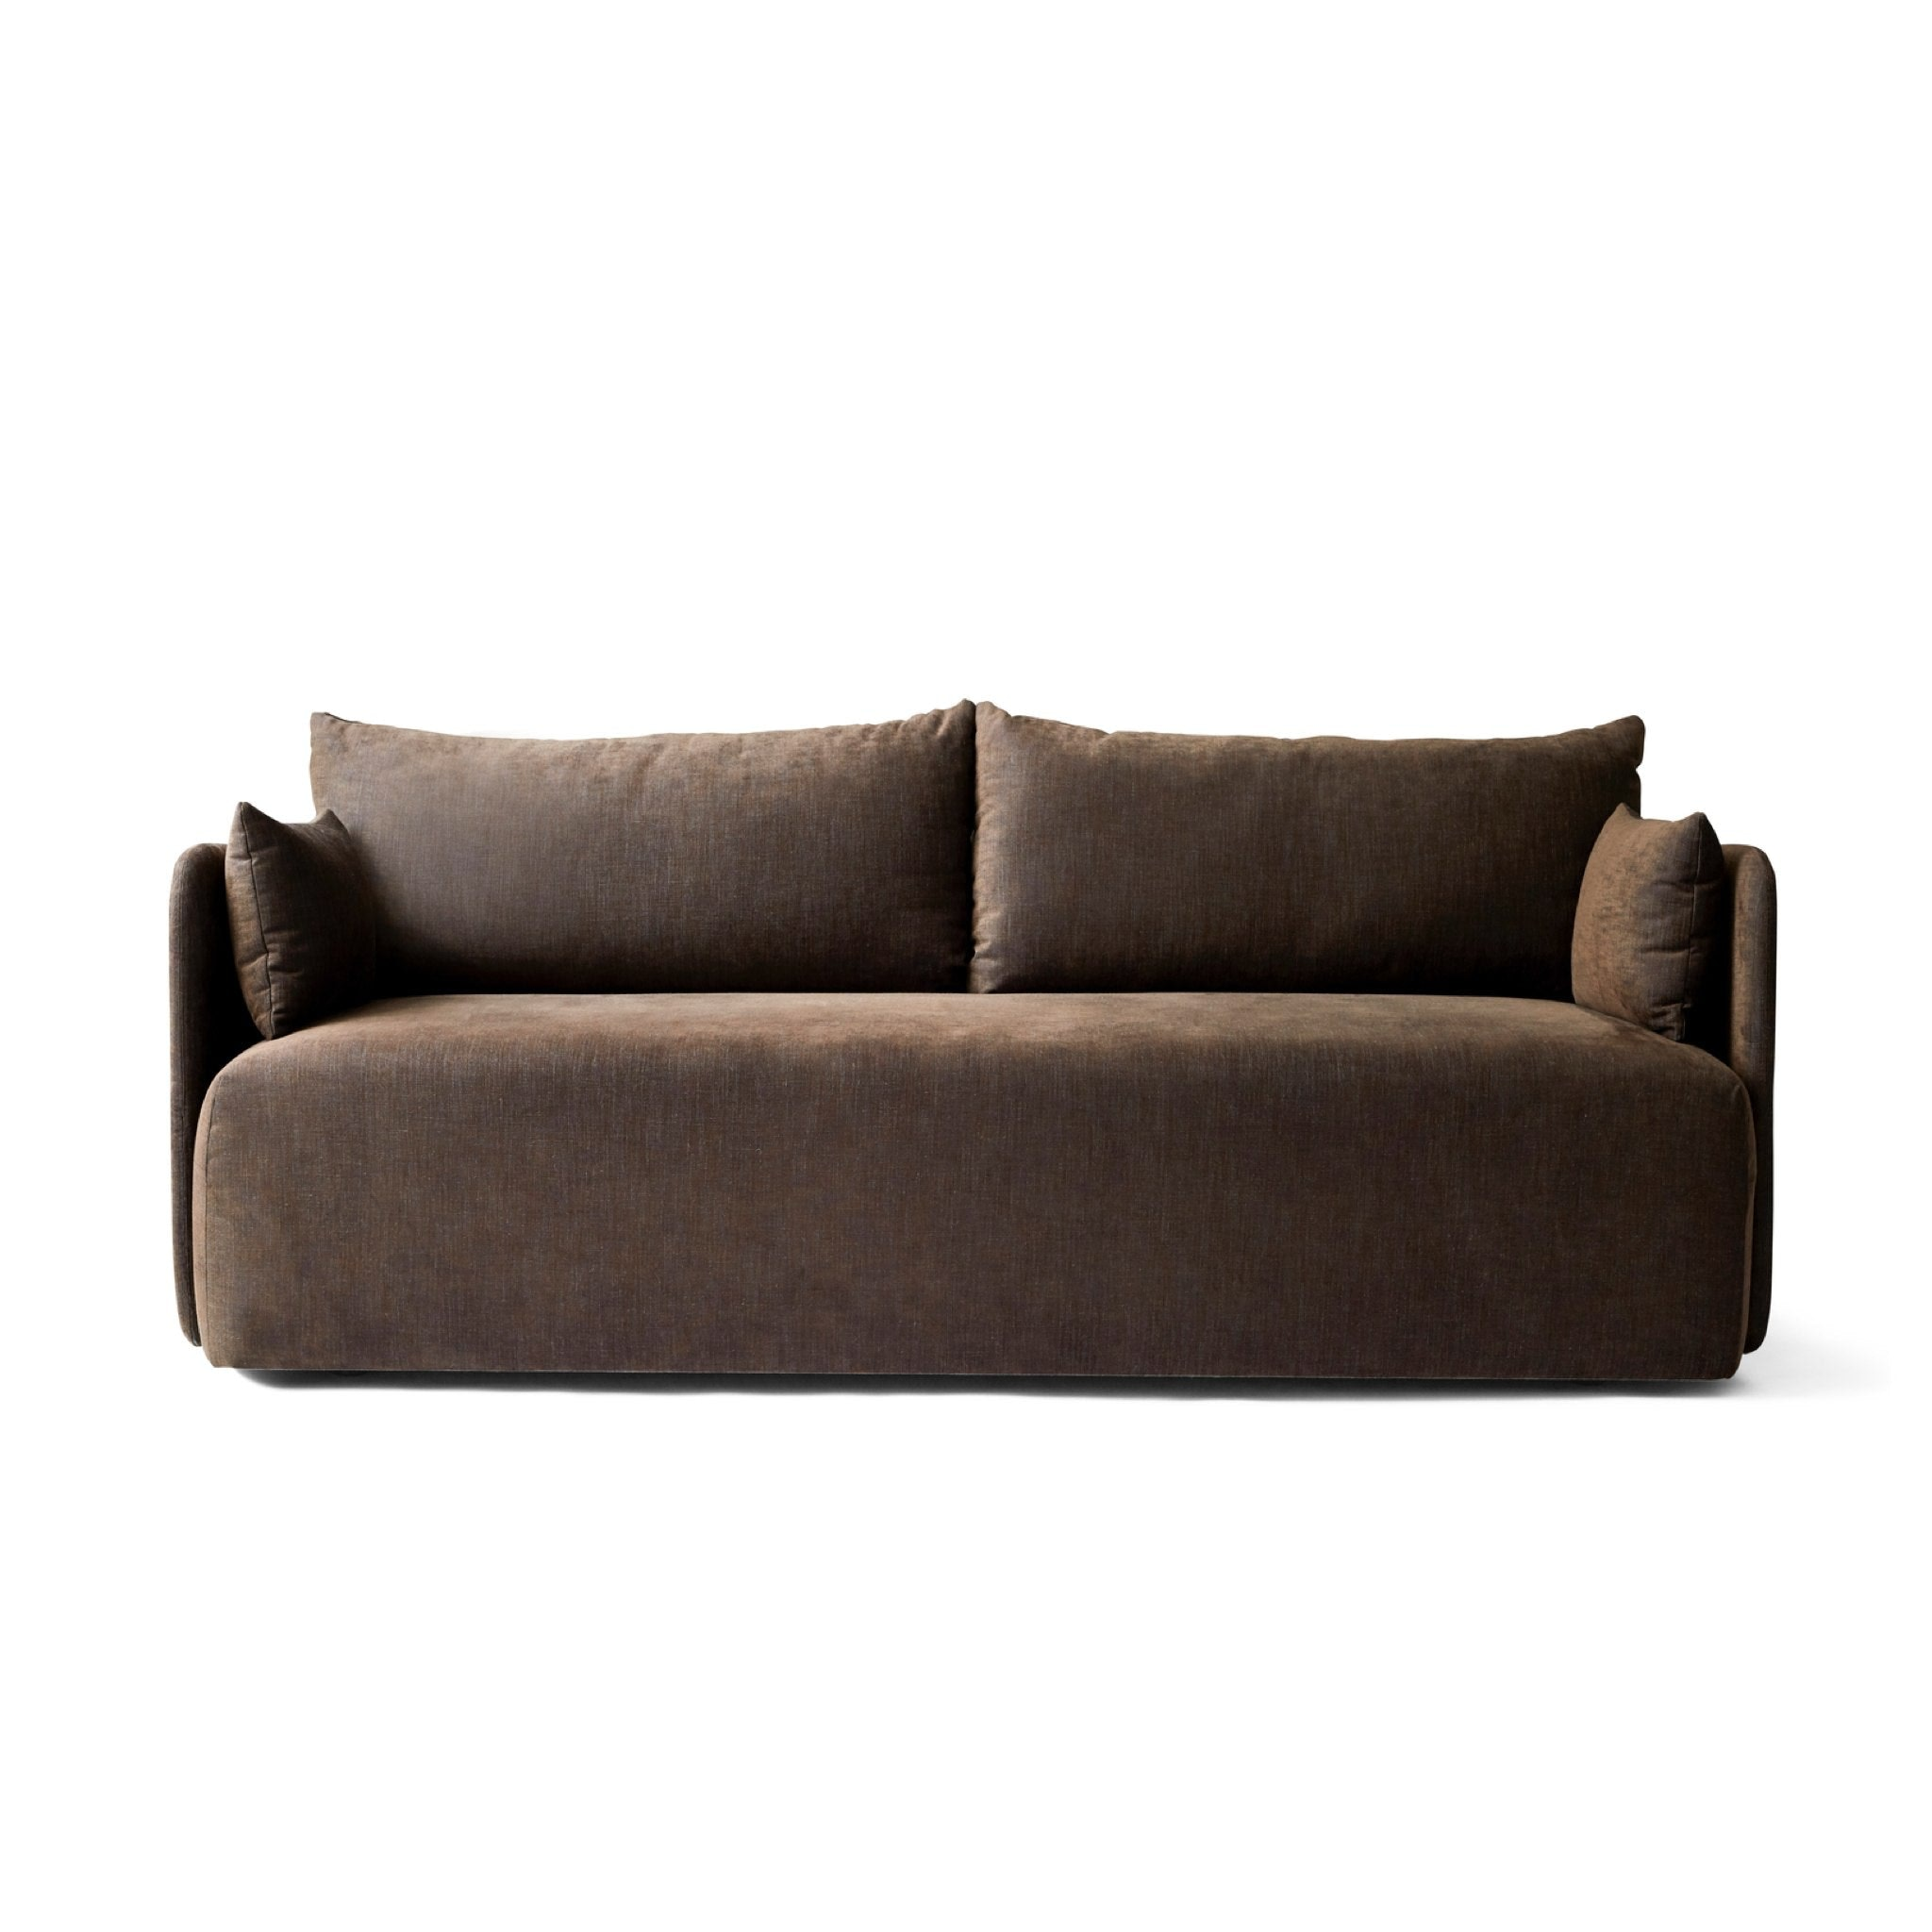 Offset 2-Seater Sofa by Menu